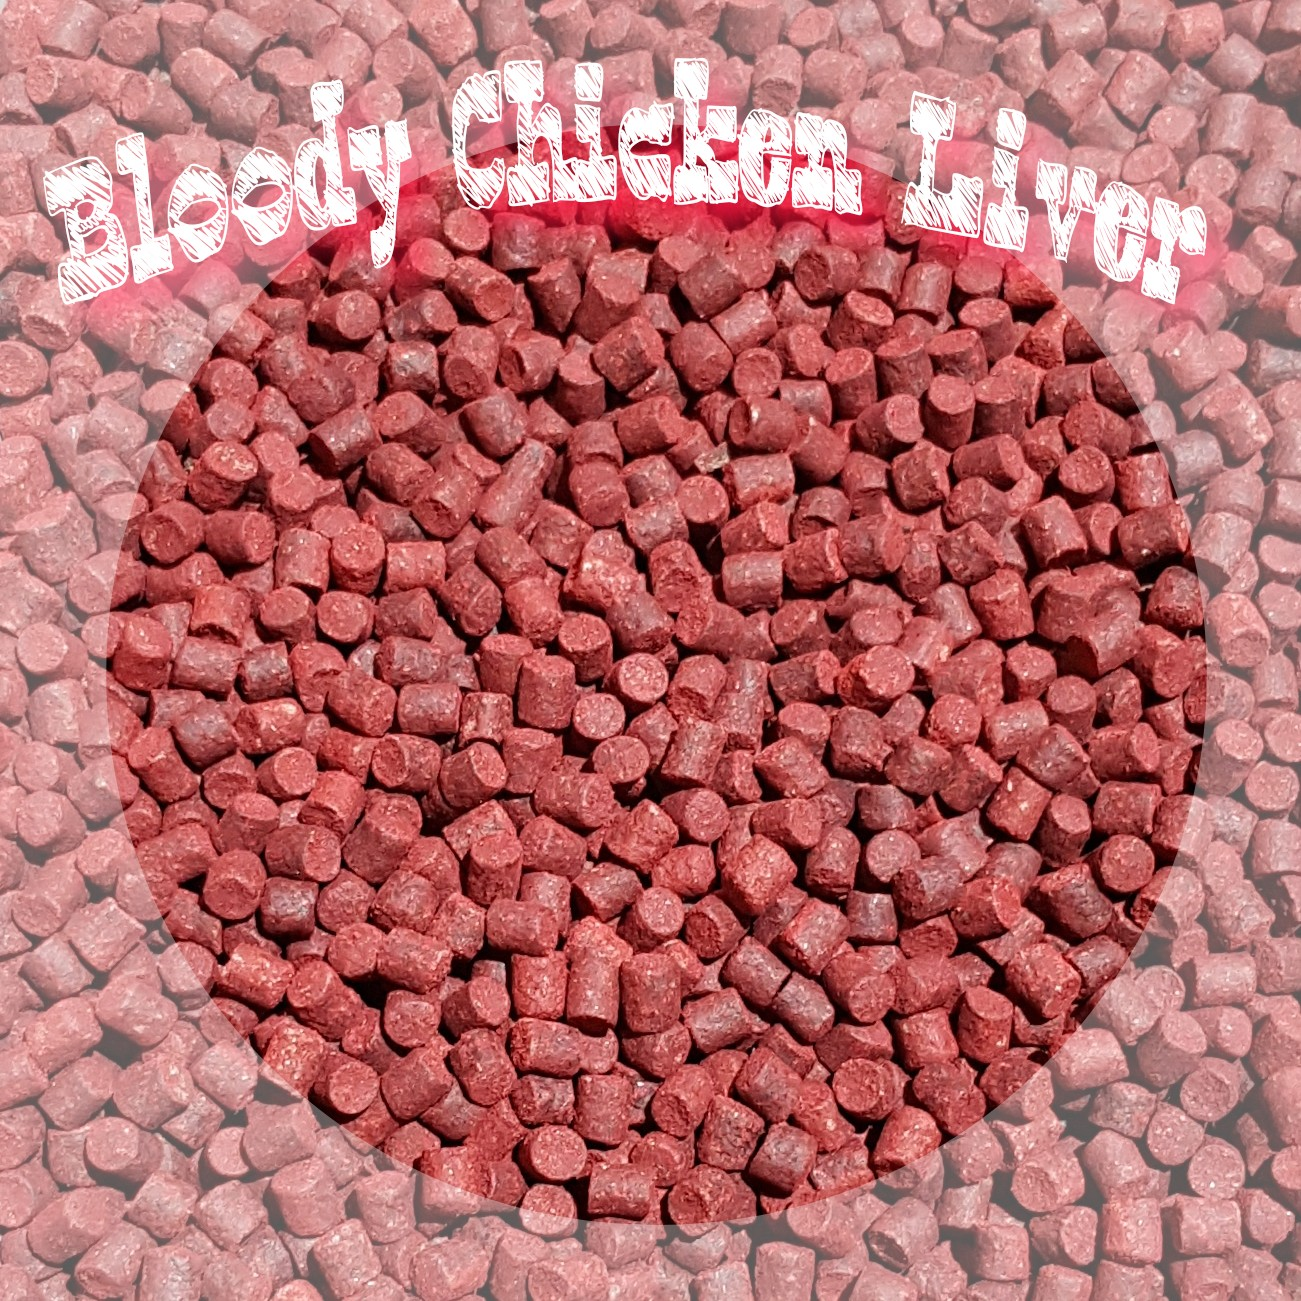 Bloody Chicken Liver